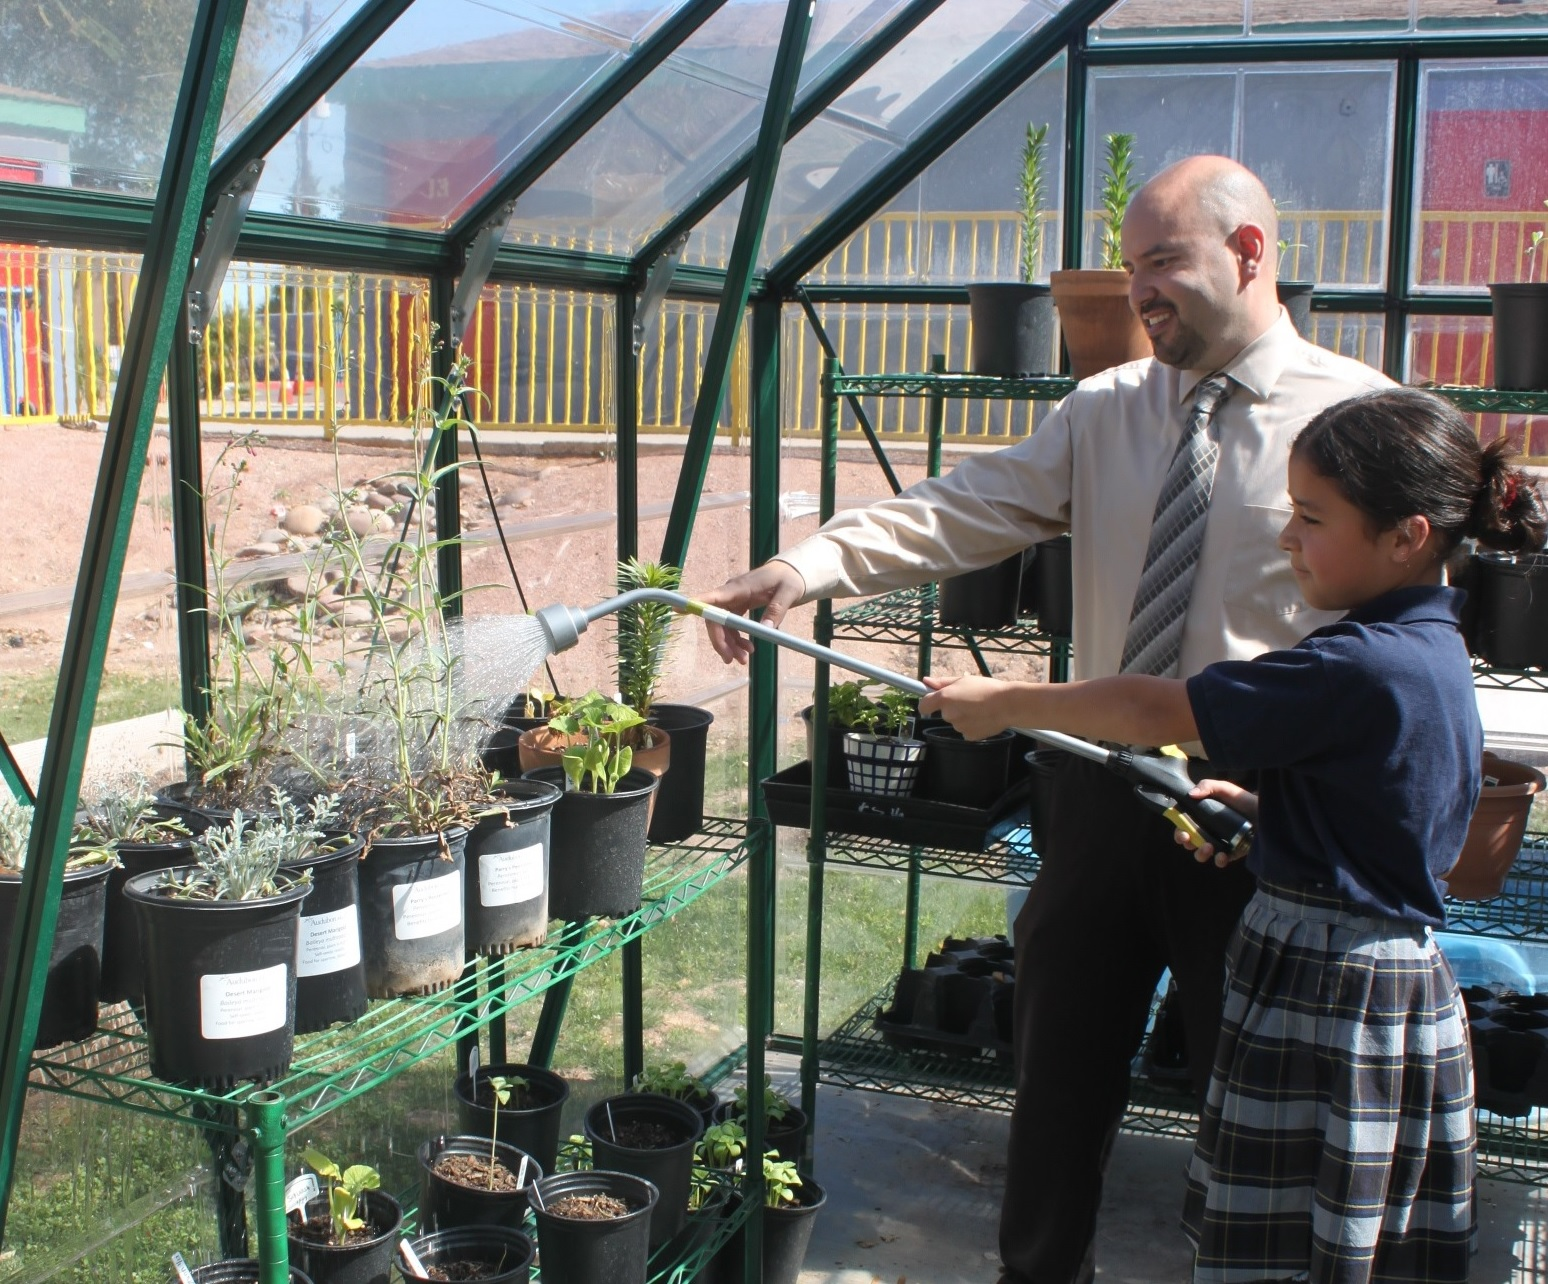 Principal Adam Sharp and a student watering plants.